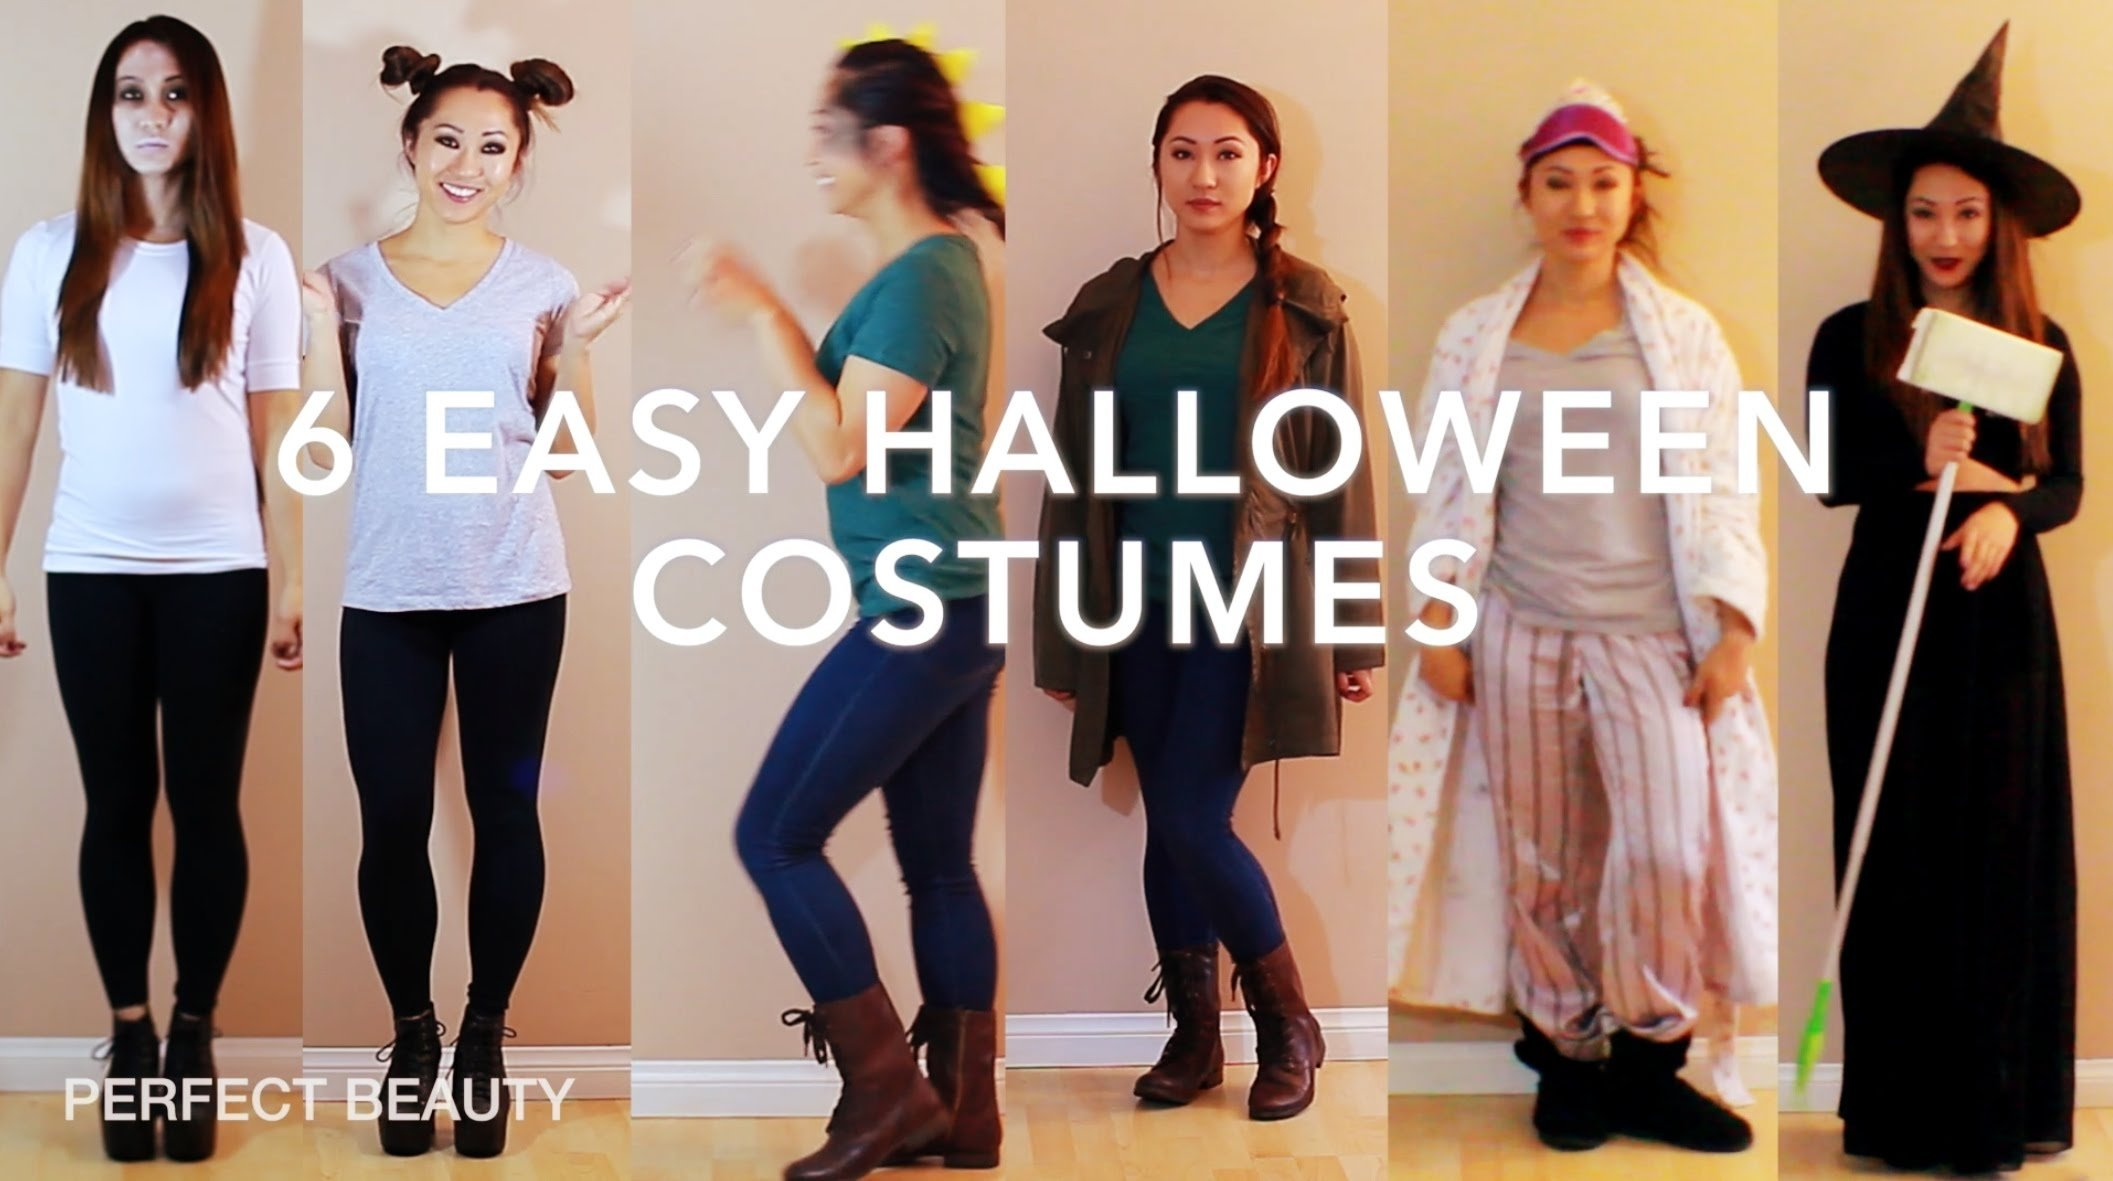 10 Cute Last Minute Halloween Costume Ideas last minute diy halloween costume ideas perfect beauty youtube 22 2021